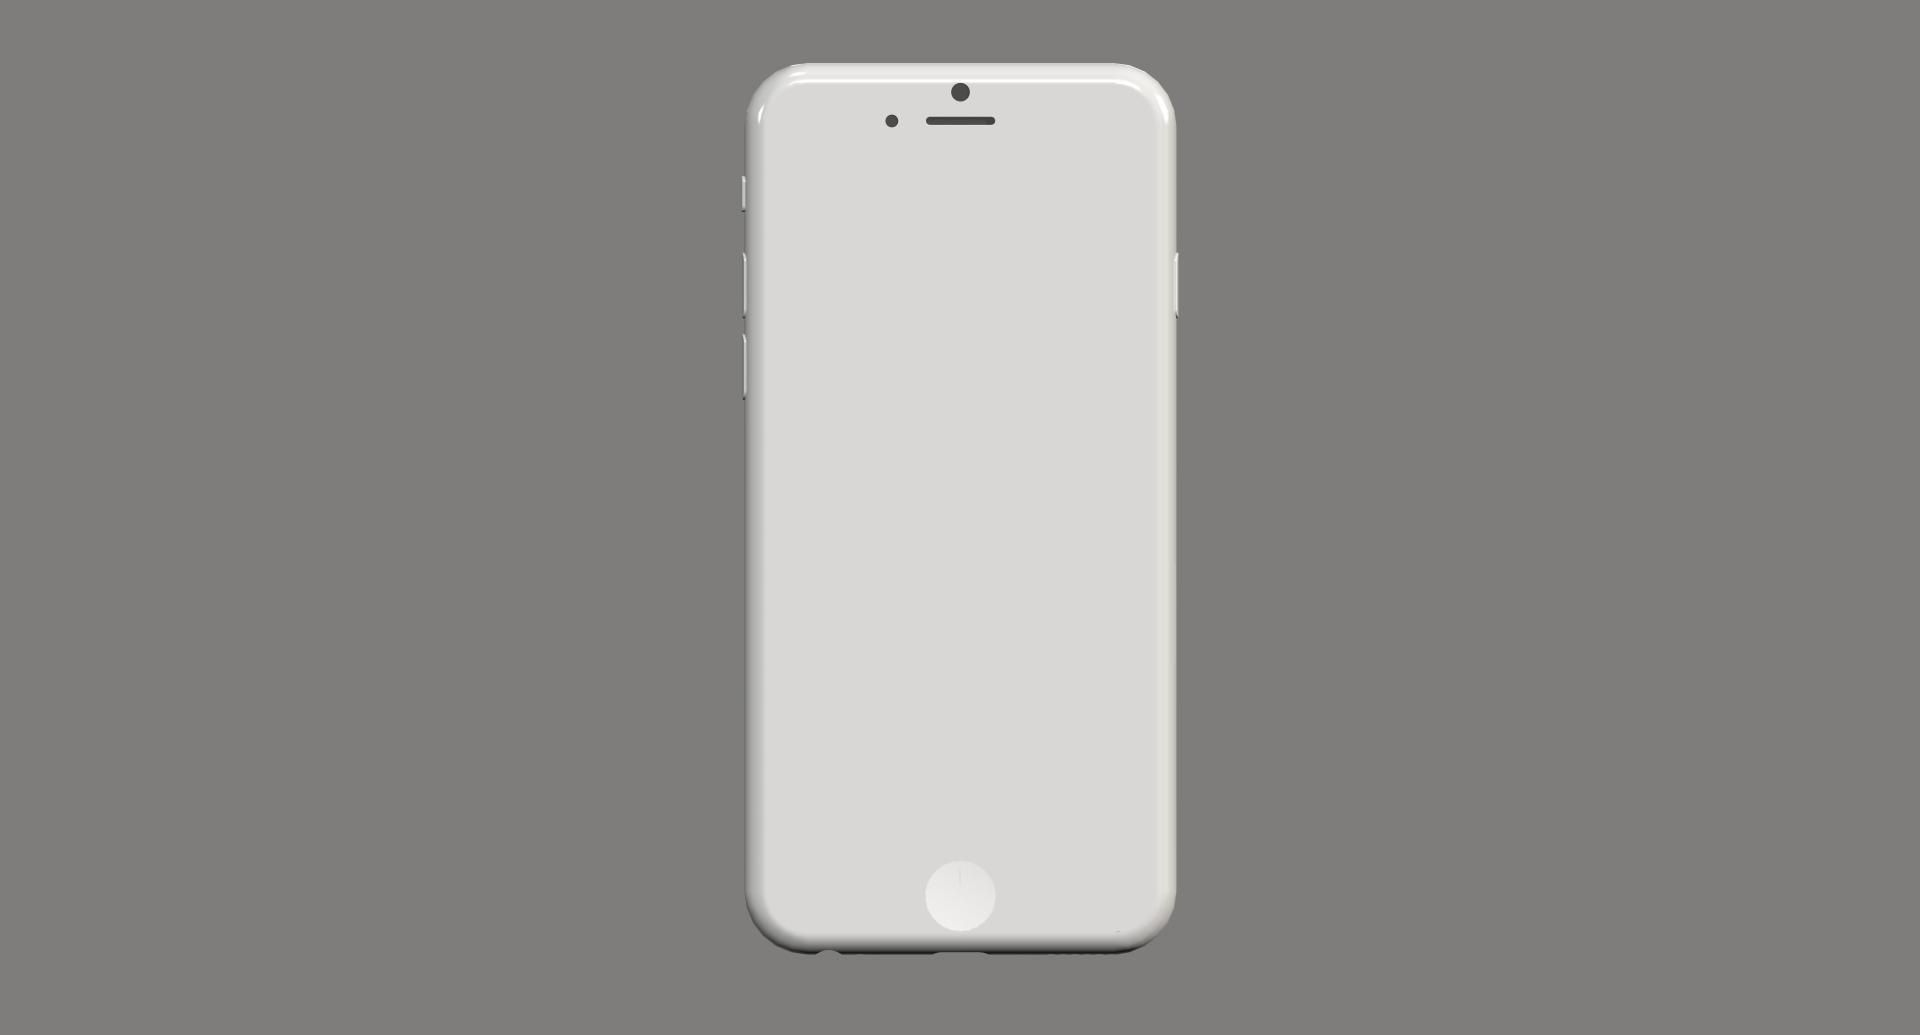 IPhone 6 Mockup 3D Model 3D printable .stl - CGTrader.com